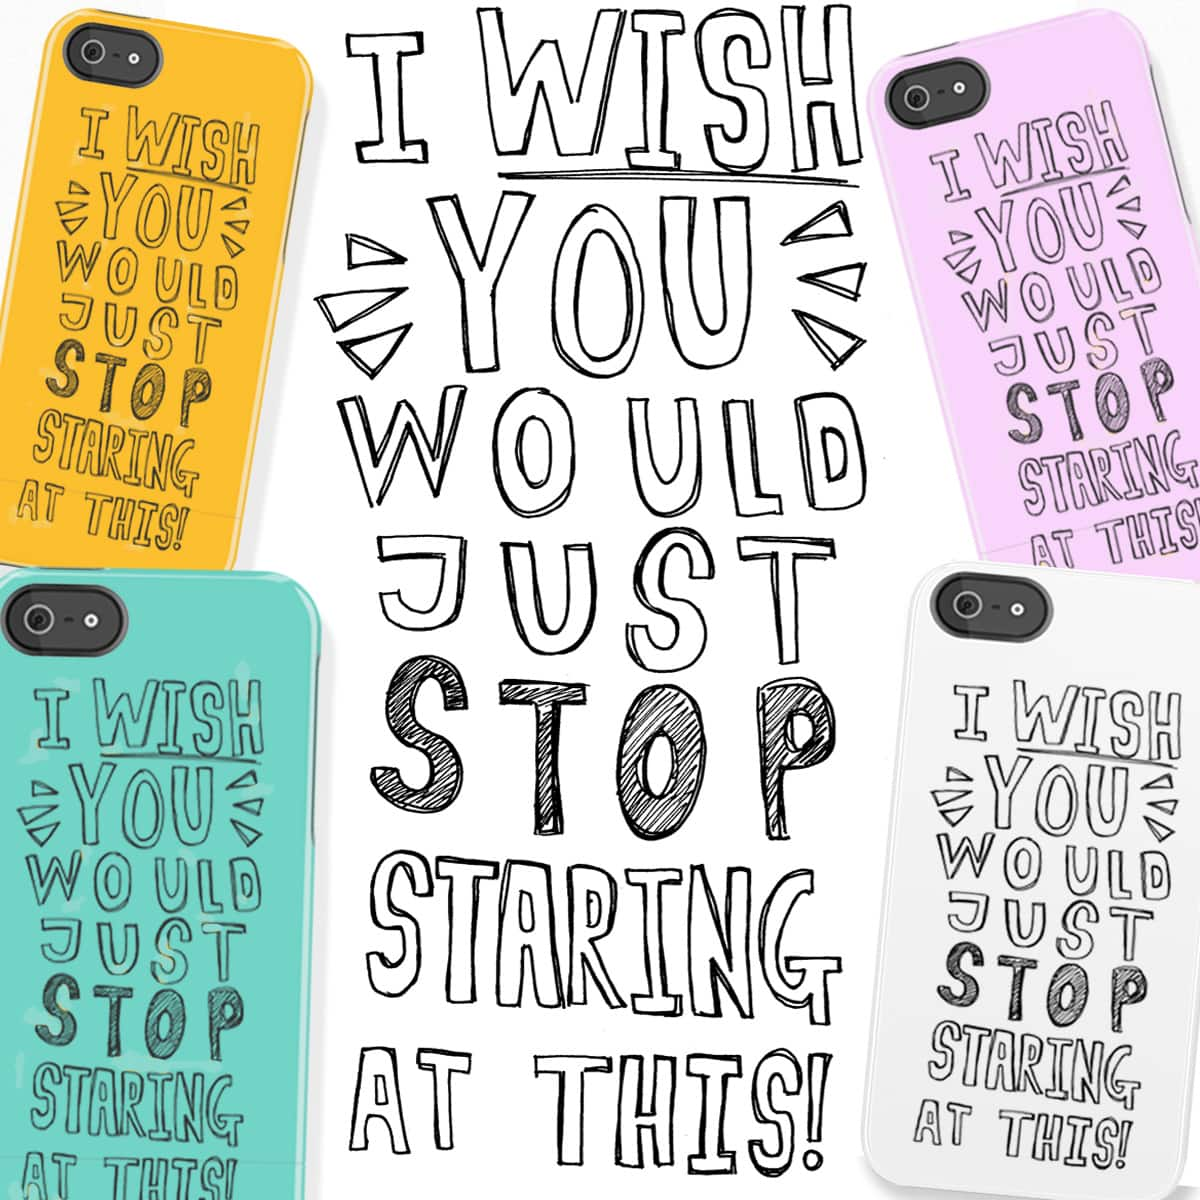 STOP Staring! by Dreamer_Wanderer on Threadless